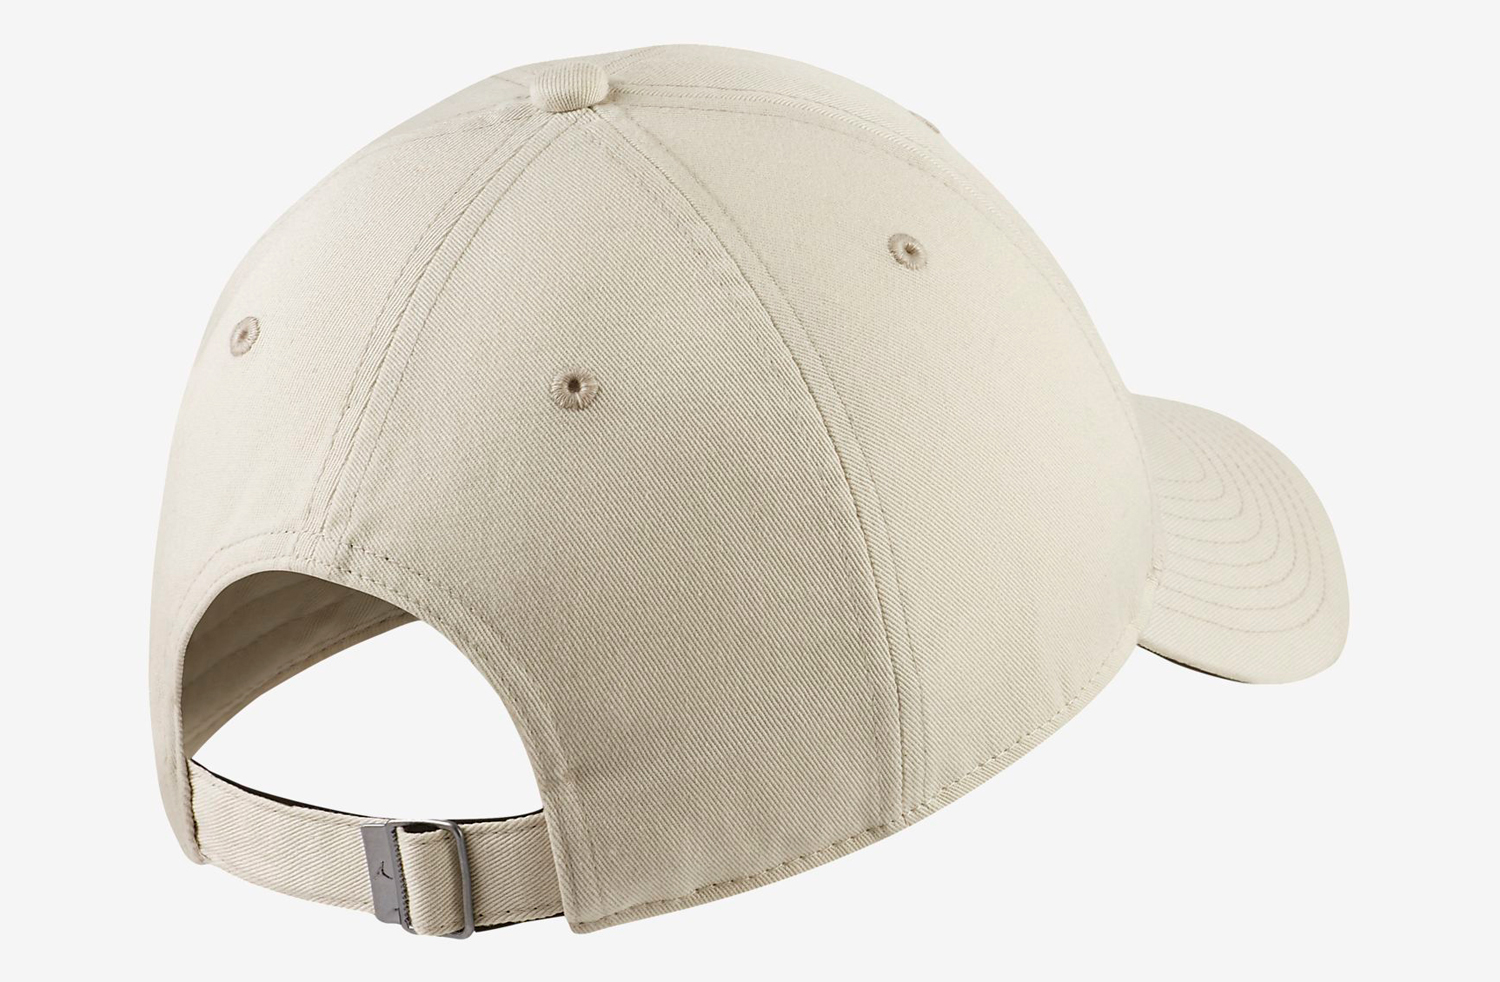 4fac0a24f6af06 jordan-3-international-flight-hat-match-tan-2. Jordan Heritage 86 Jumpman  Air Hat